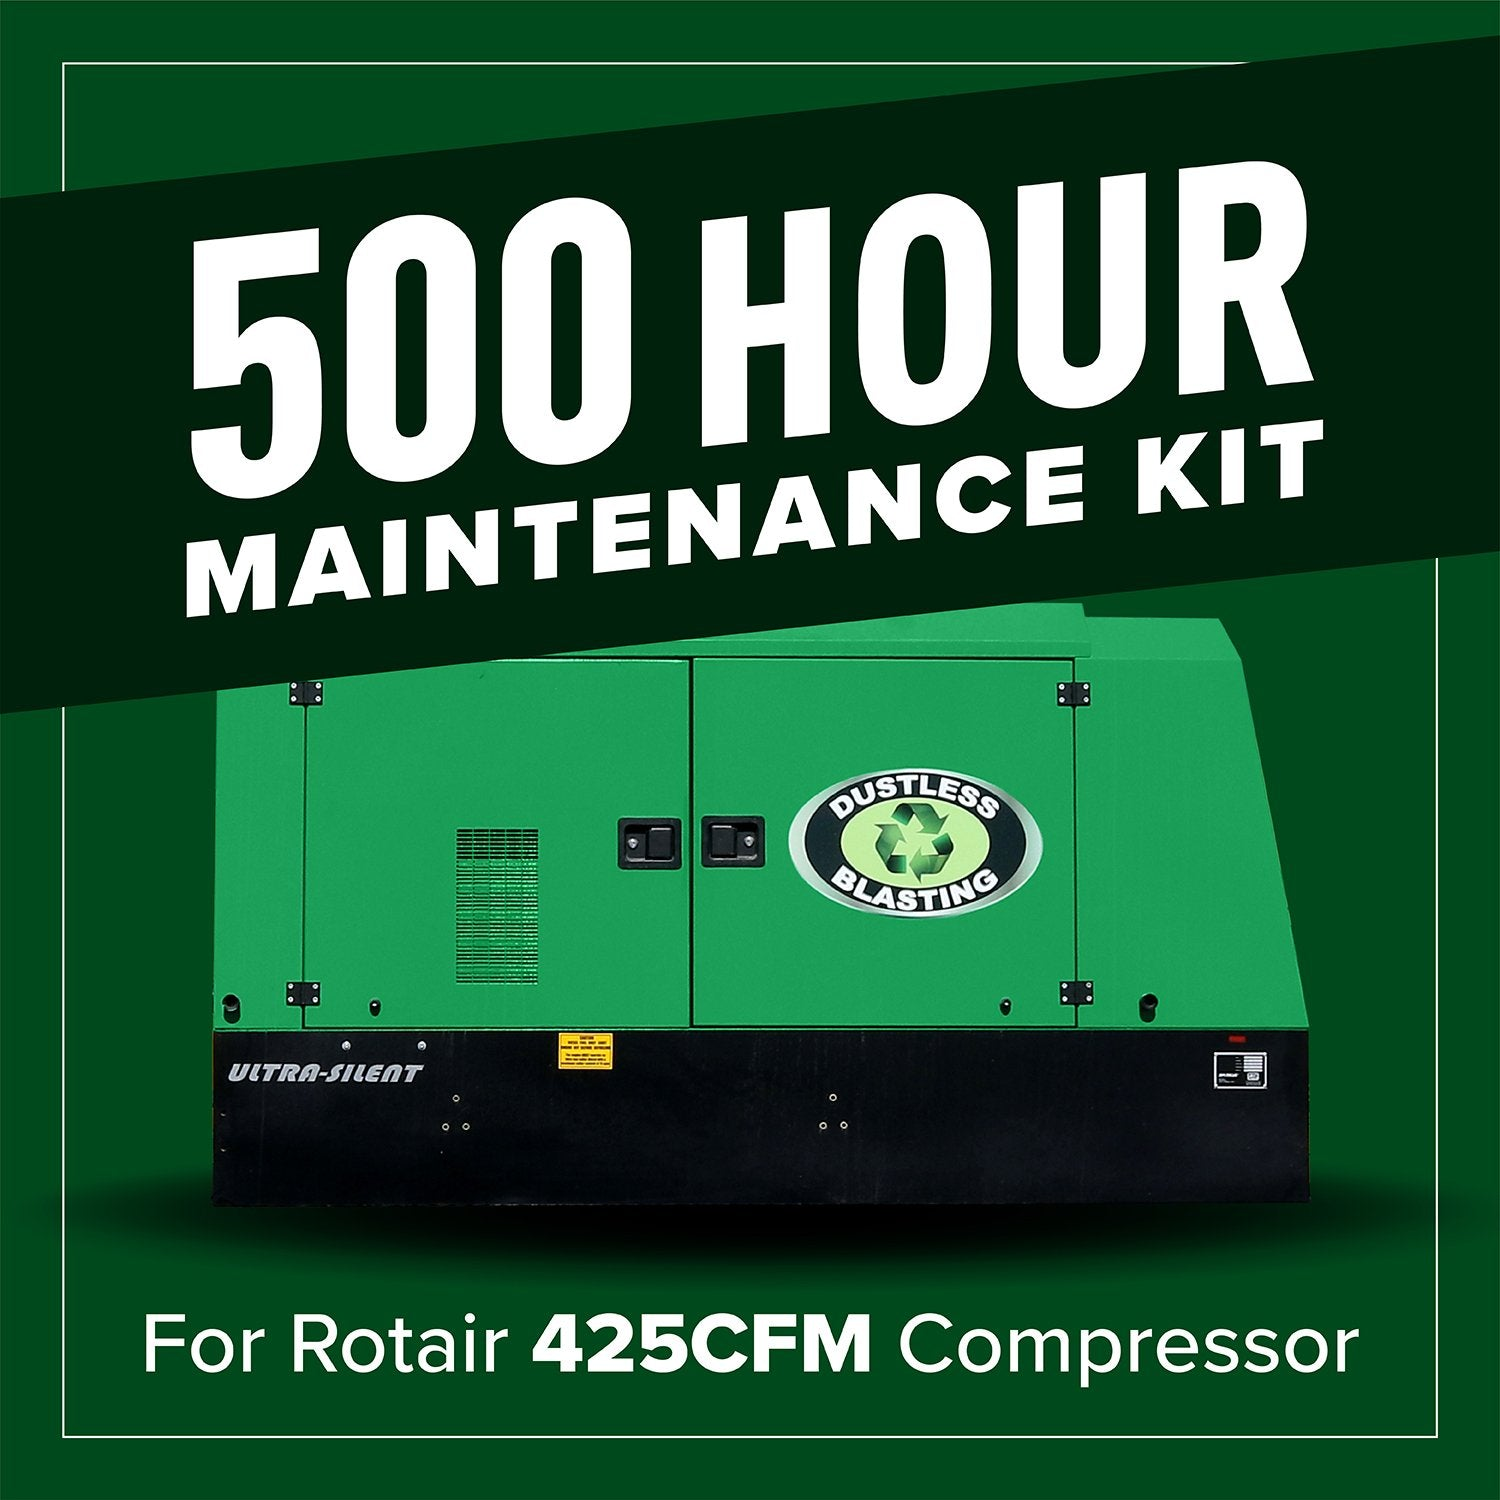 500 Hour Compressor Maintenance Kit - 425CFM - 84404/001